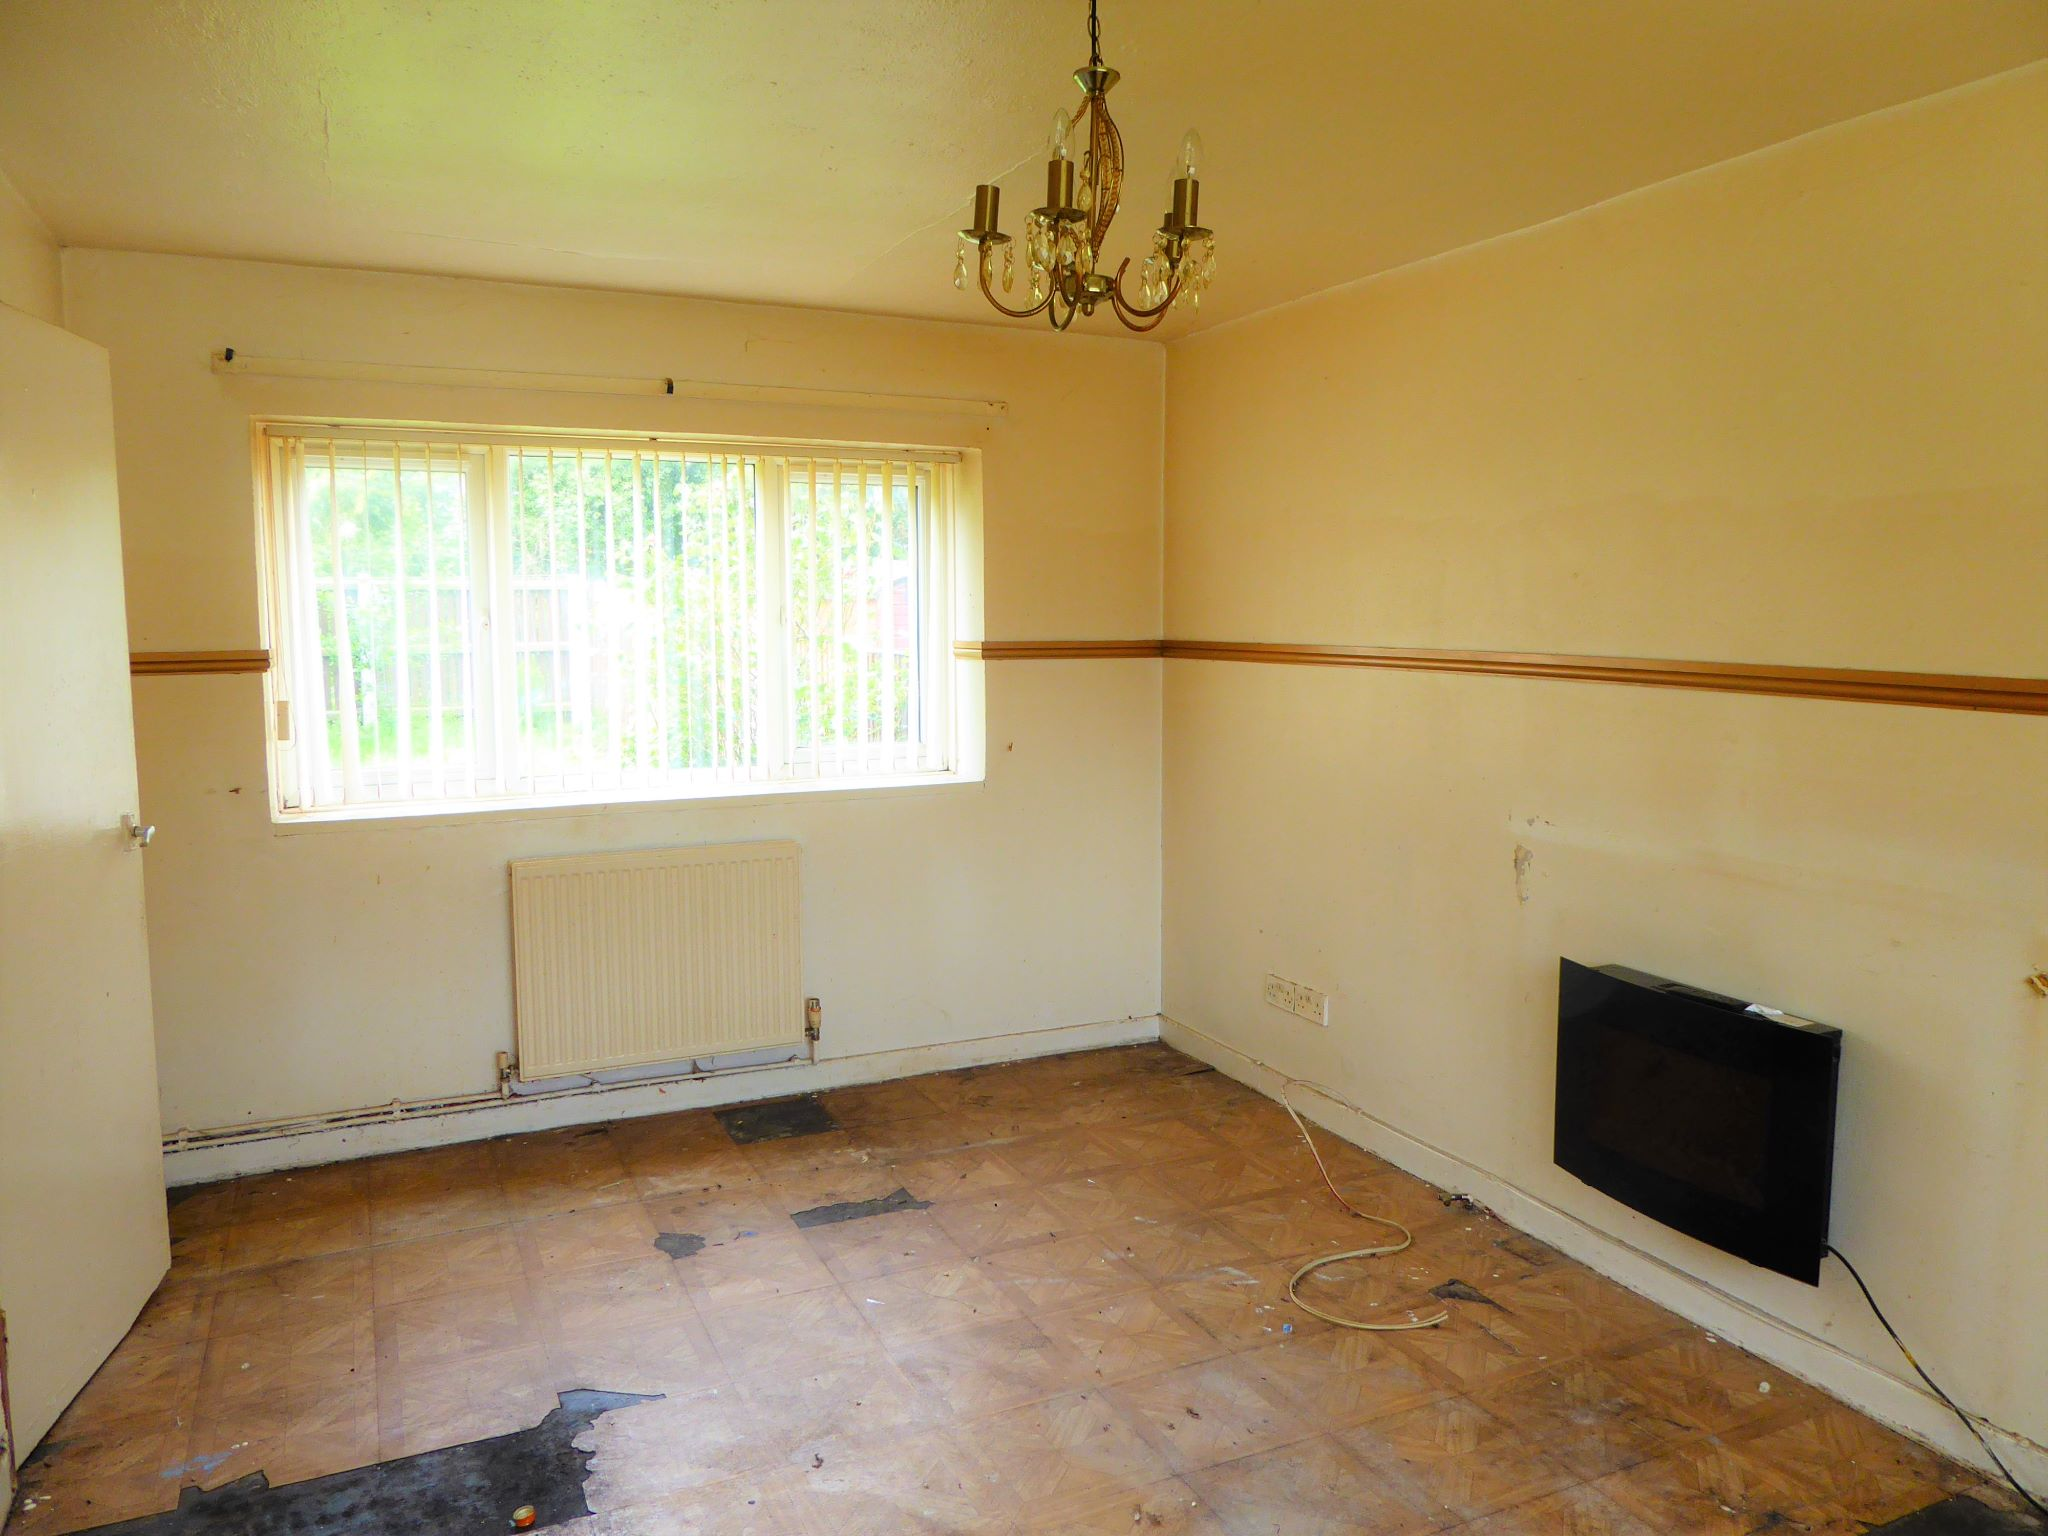 3 bedroom mid terraced house SSTC in Abergele - Photograph 2